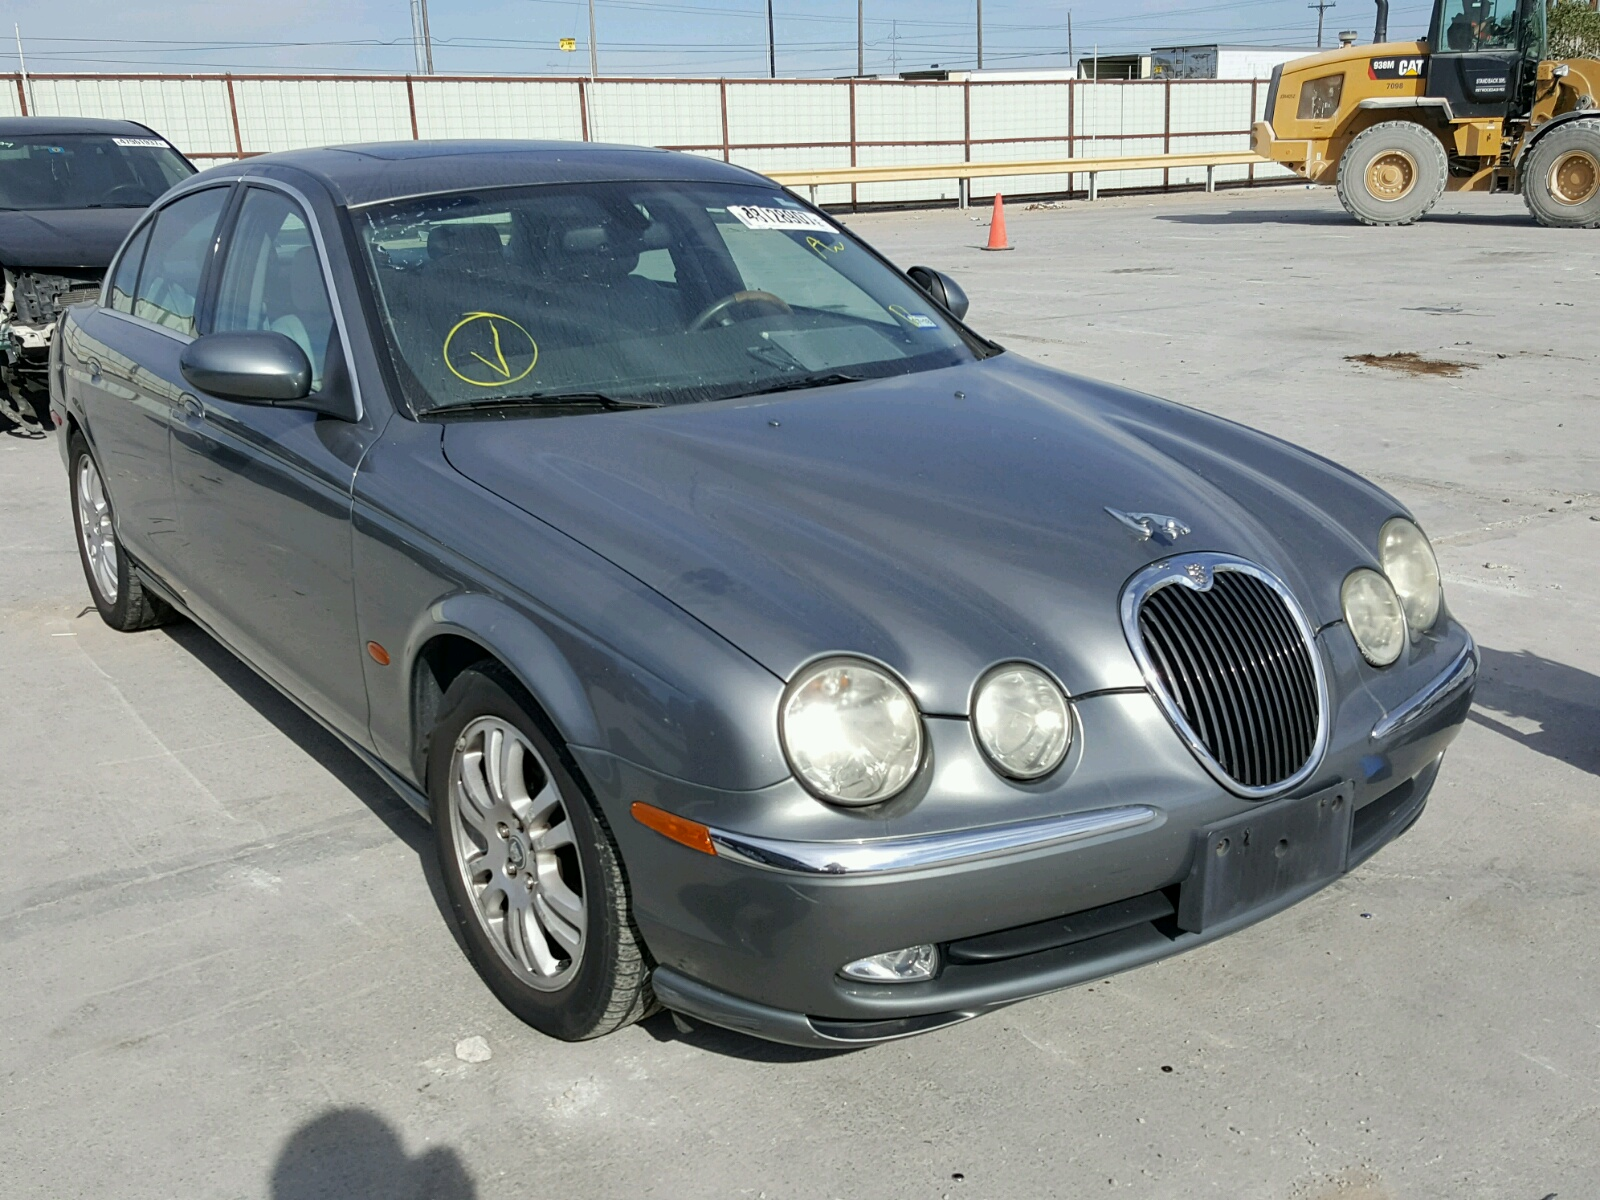 large std by in for offered s c picture cc jaguar sale com classiccars of vehicle listings auction type view auctions carlisle pennsylvania